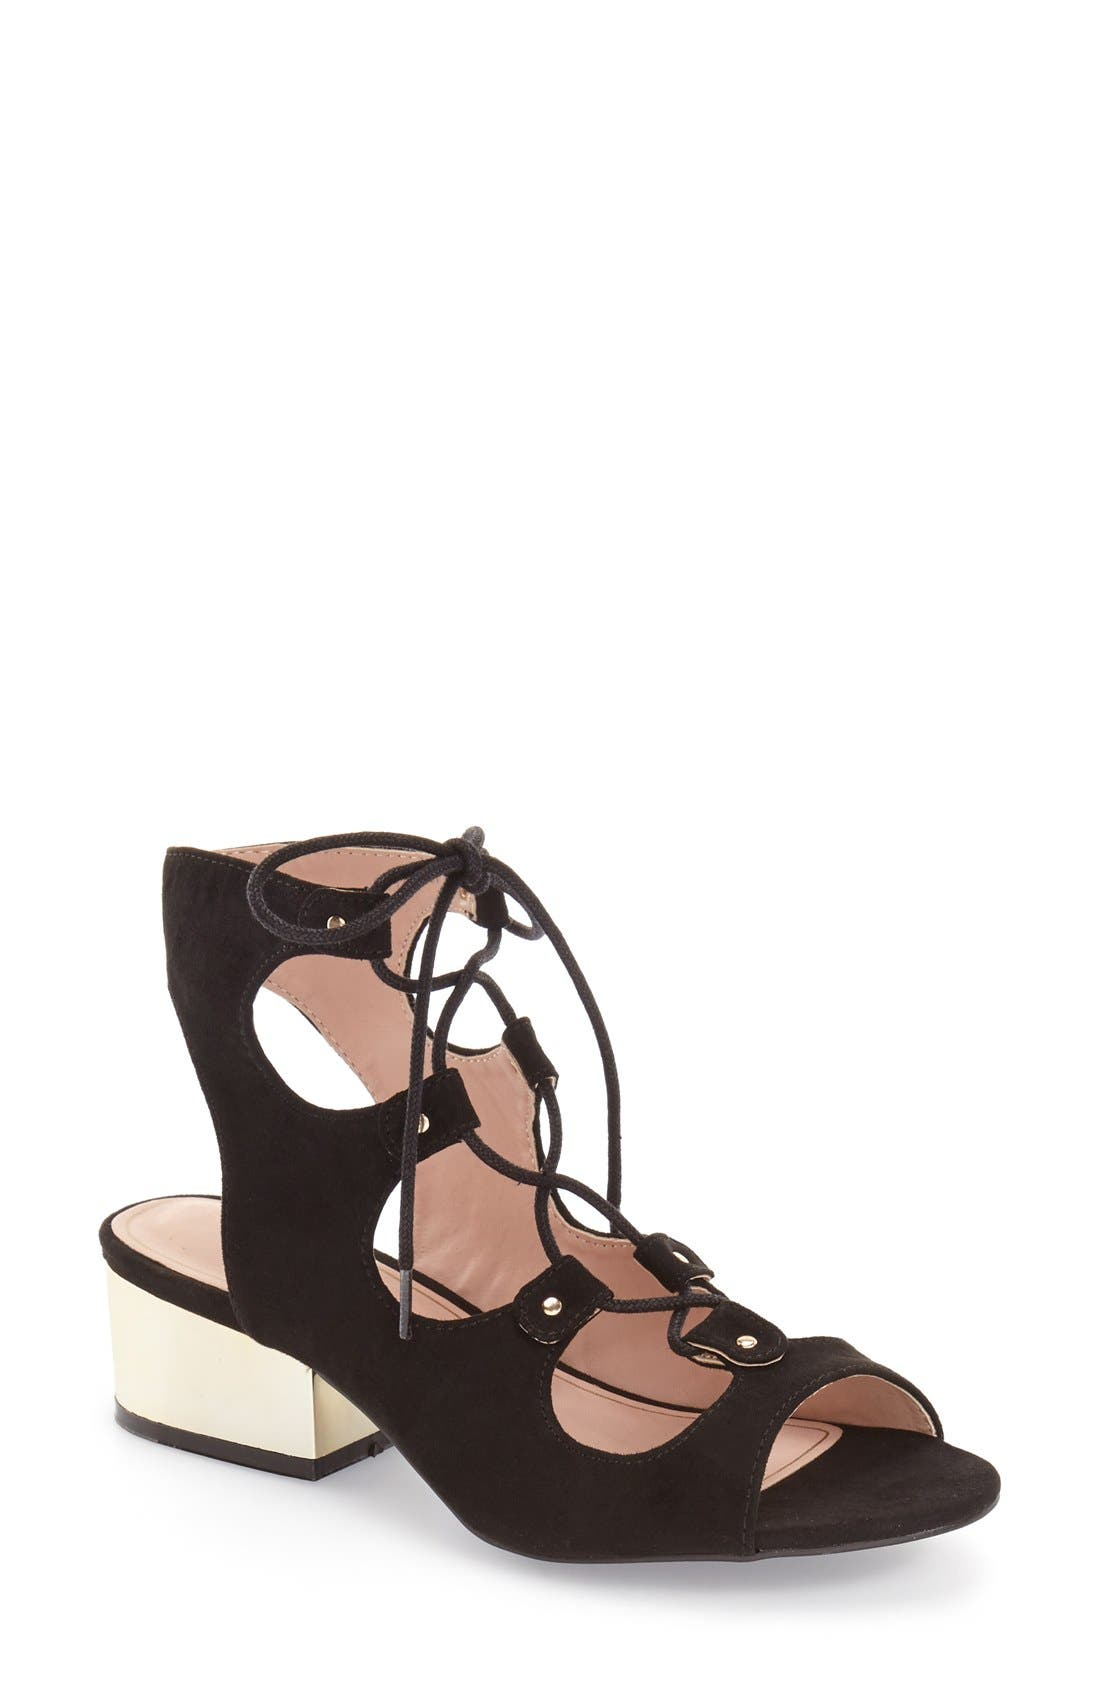 Alternate Image 1 Selected - Topshop 'Daily' Ghillie Sandal (Women)